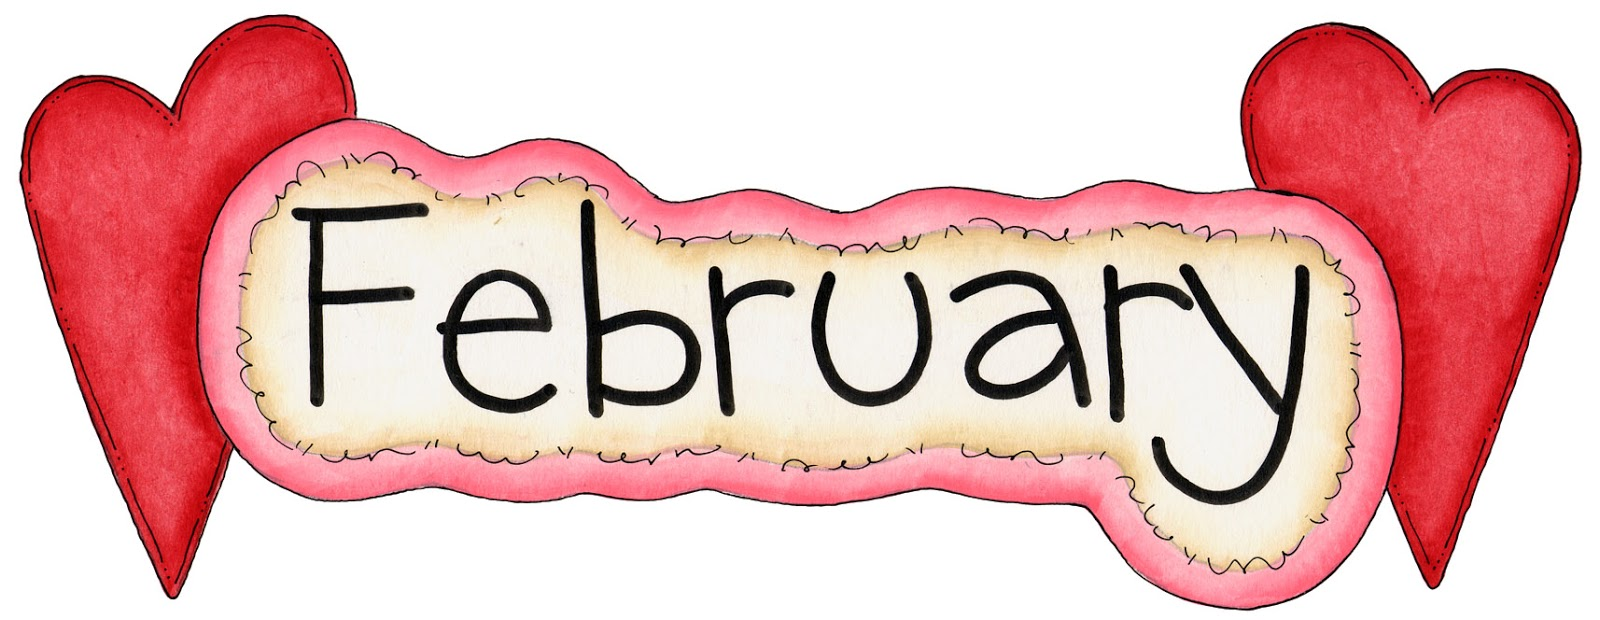 1600x620 February Clip Art Images Illustrations Photos